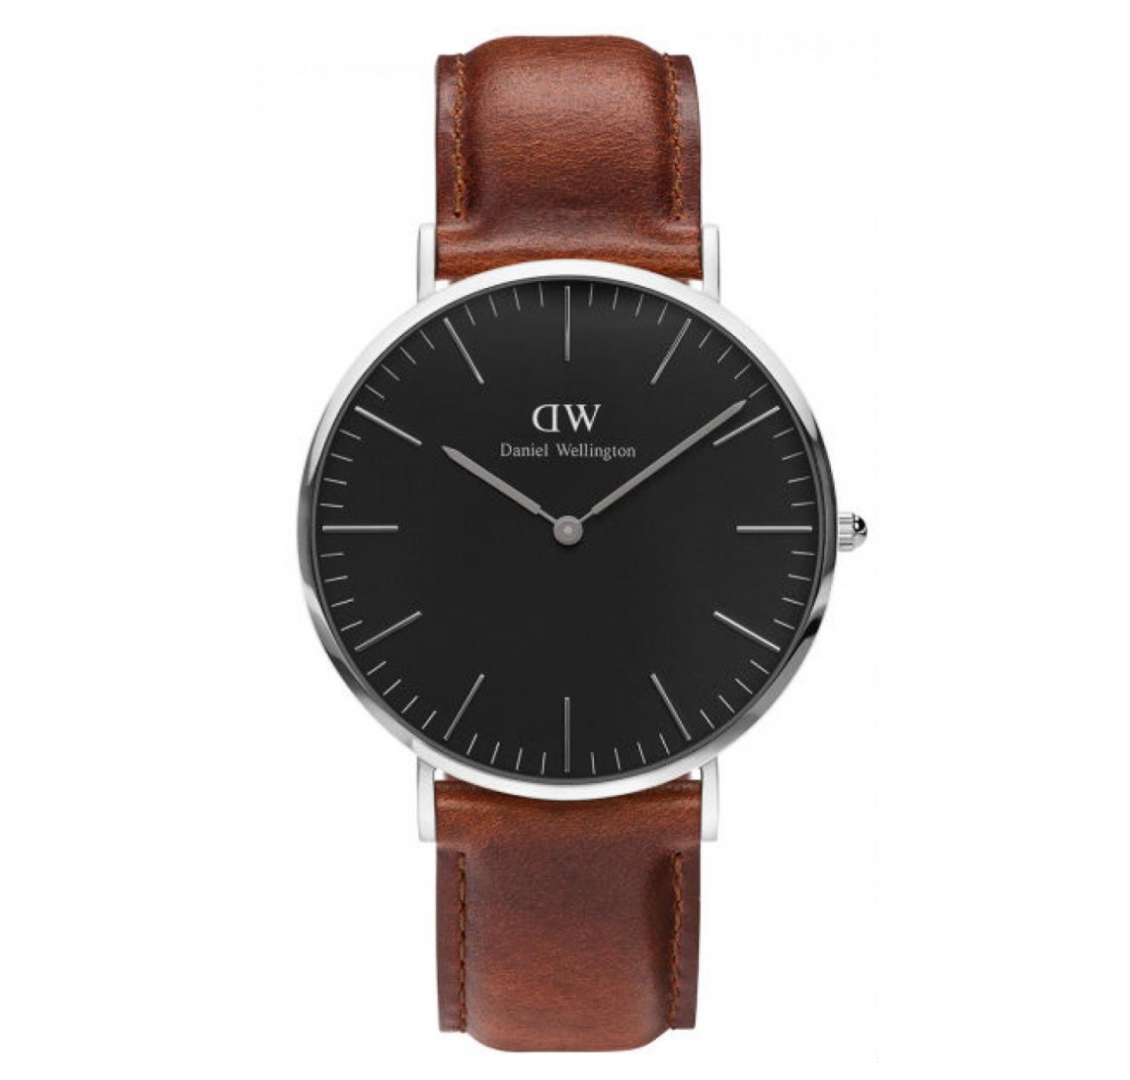 שעון יד אנלוגי daniel wellington DW00100130 דניאל וולינגטון